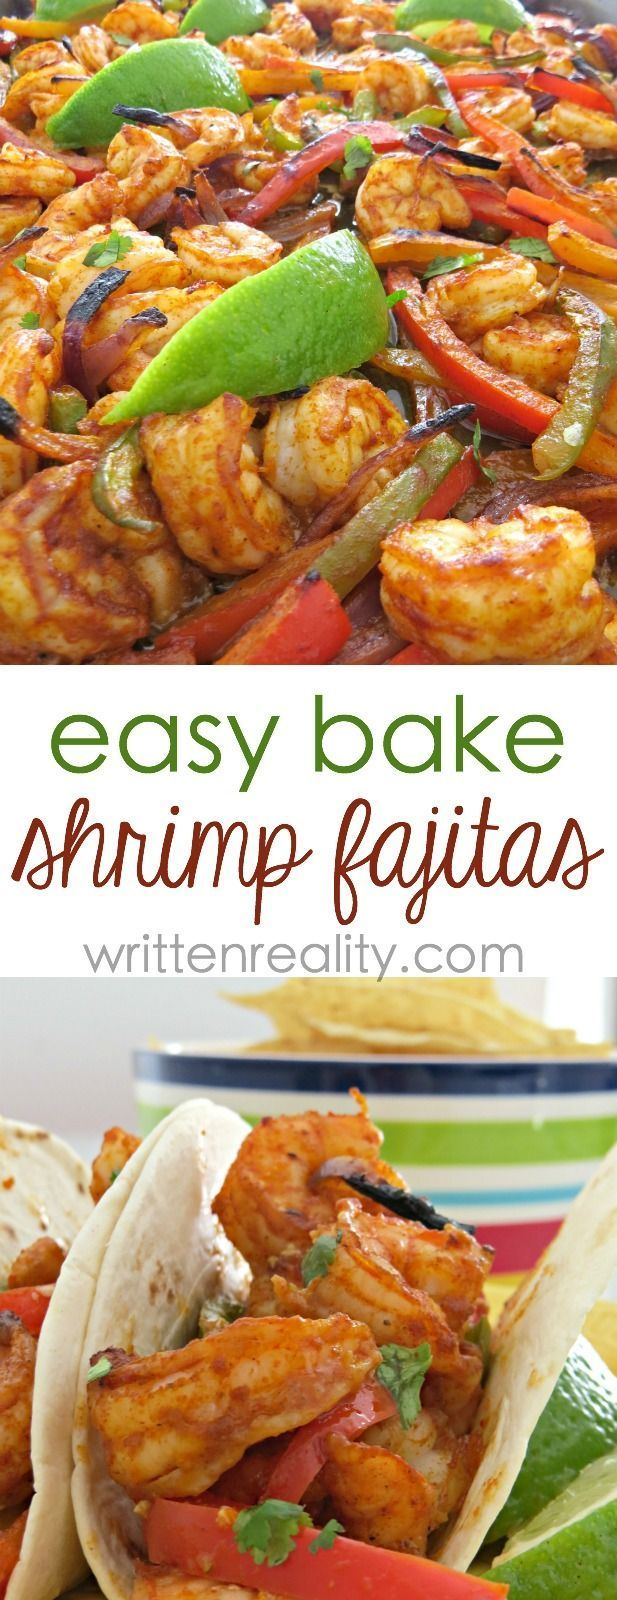 Sheet Pan Shrimp Fajitas #shrimpfajitas